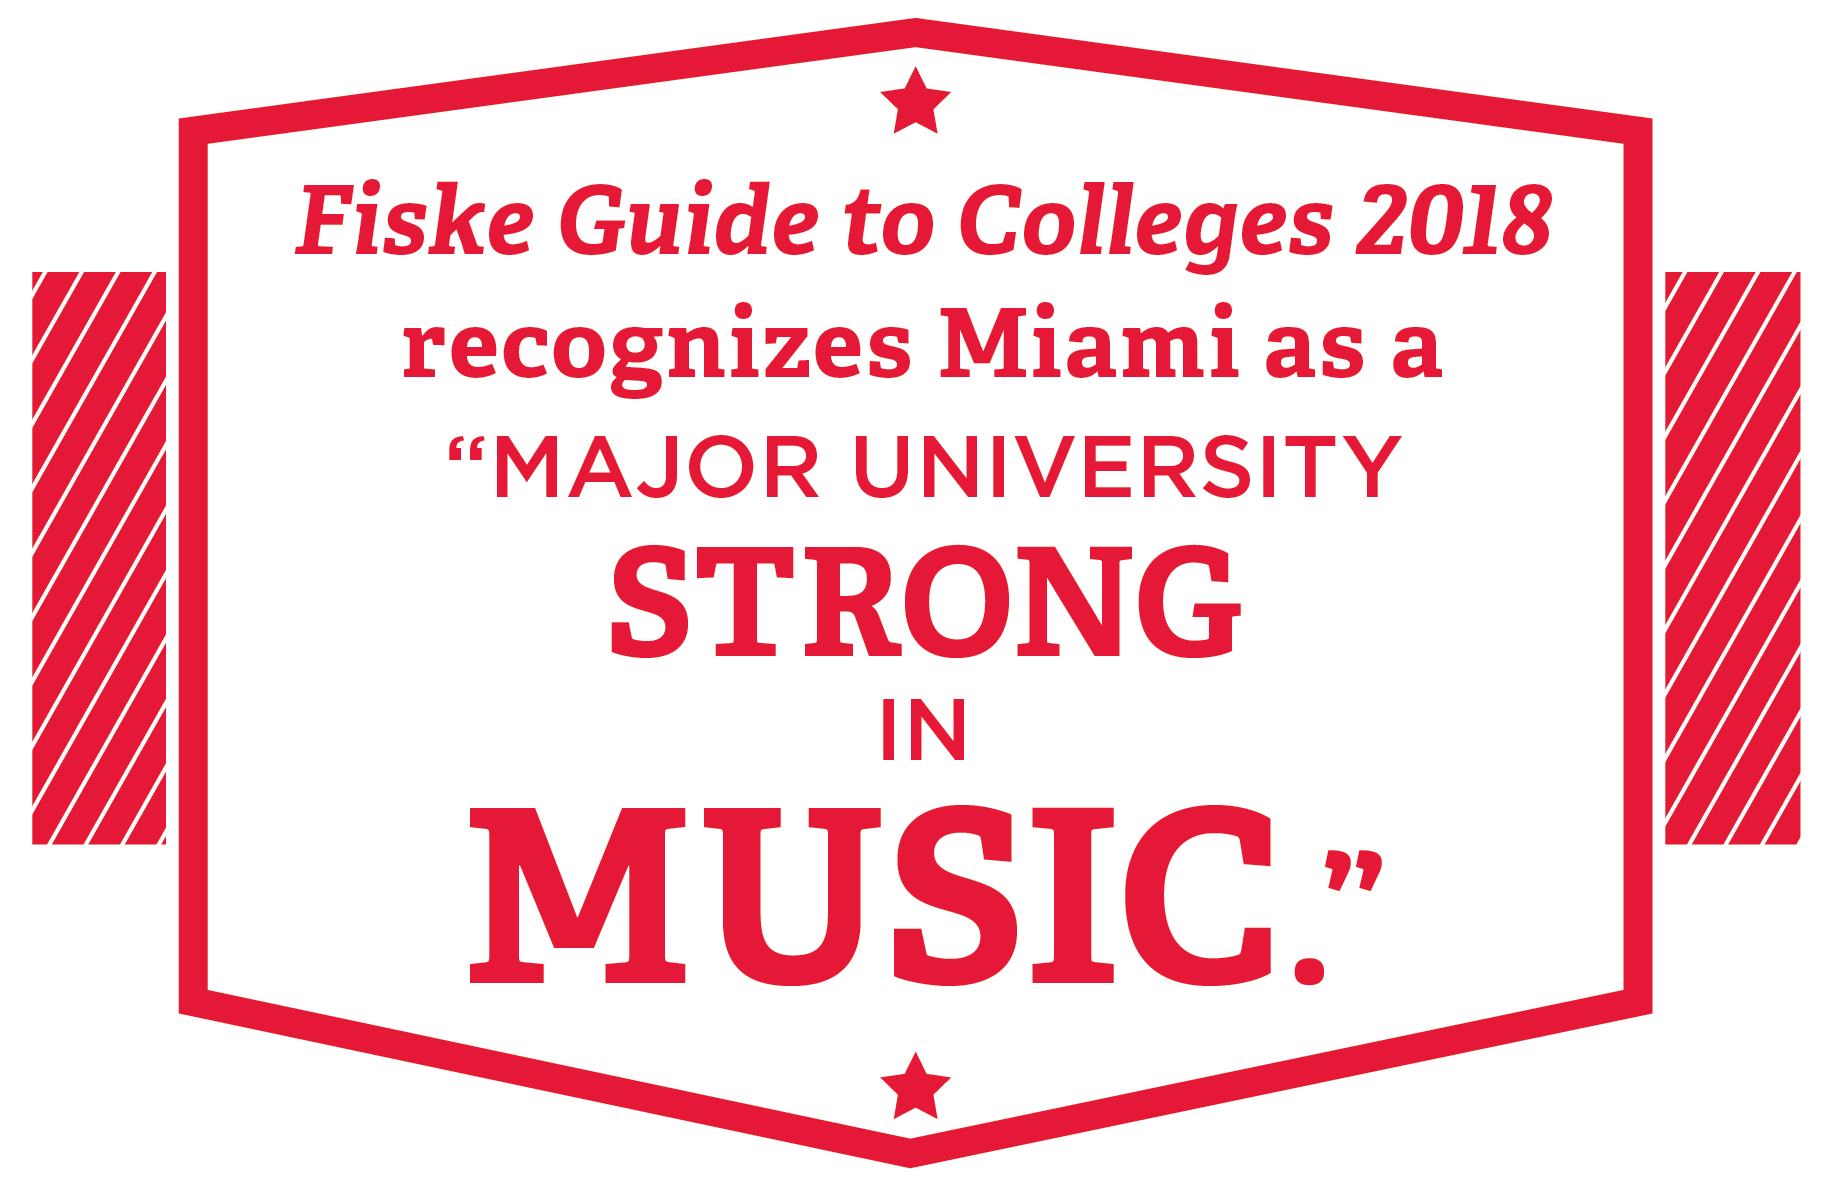 Fiske Guide to Colleges 2018 recognizes Miami as a Major University strong in music